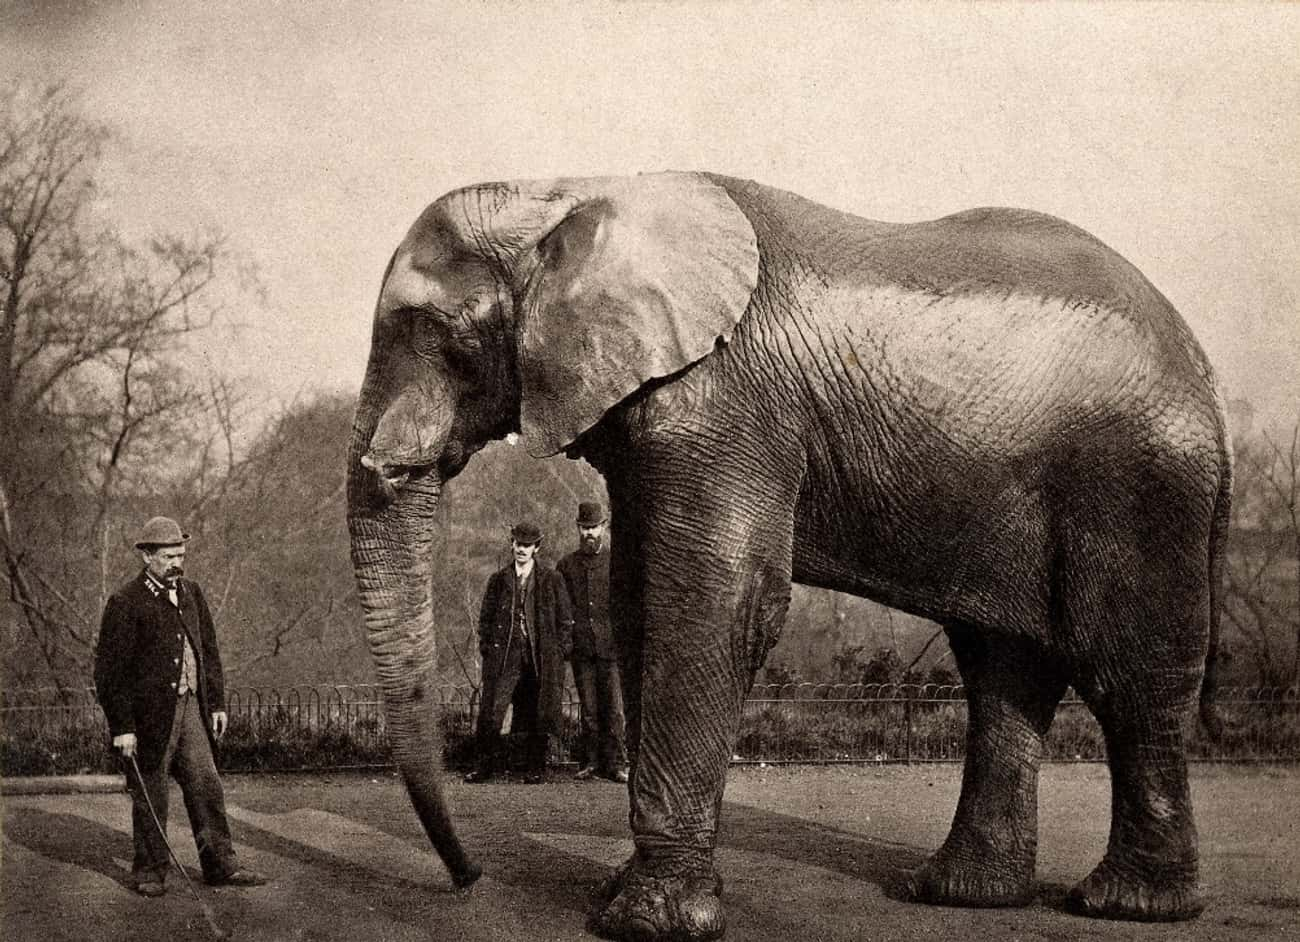 He Marched 21 Elephants And 17 Camels Across The Brooklyn Bridge